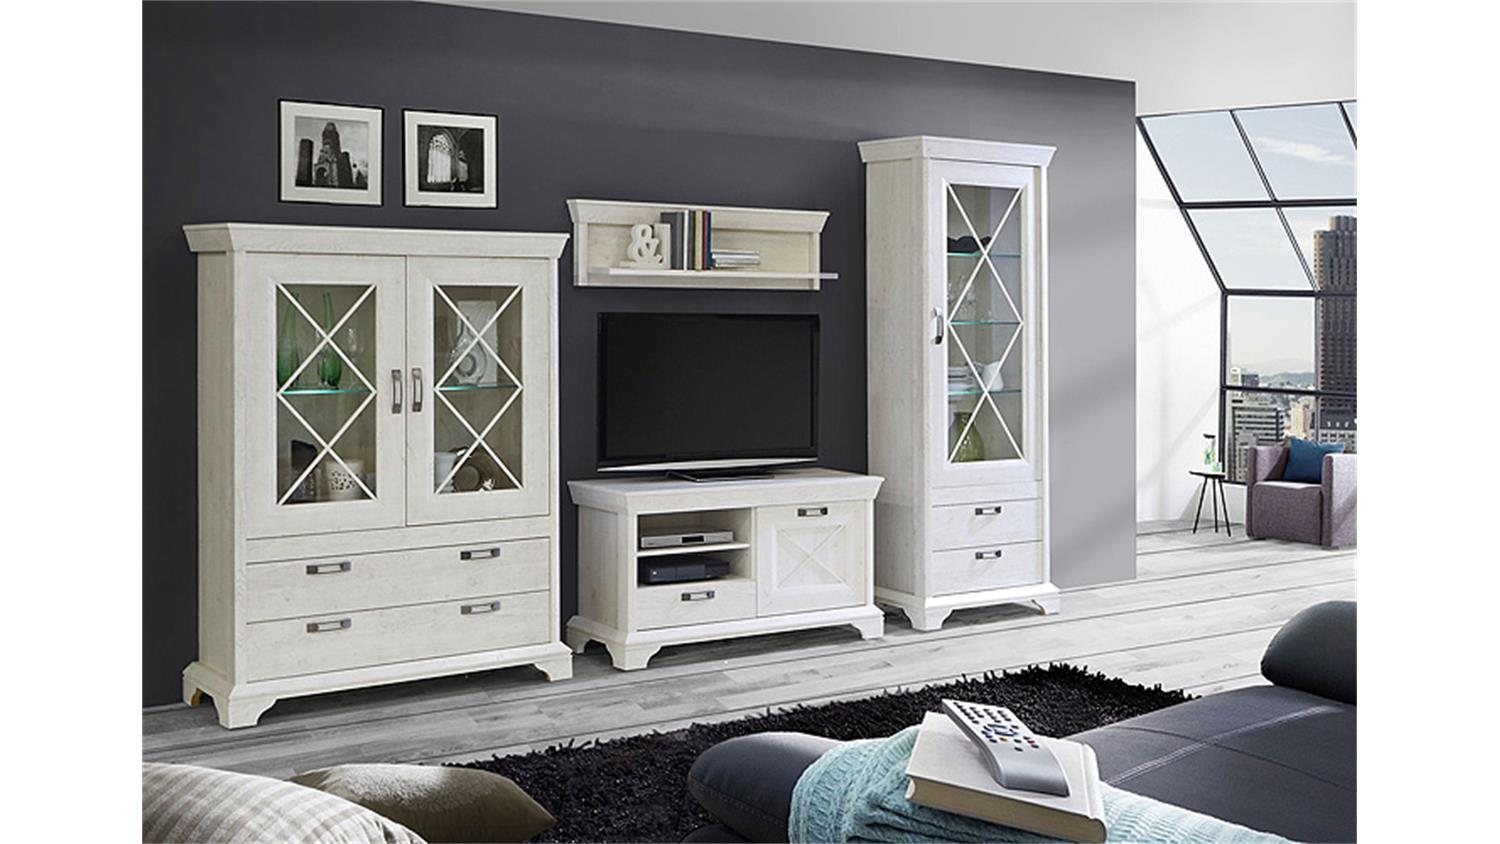 wohnwand 1 kashmir anbauwand in pinie wei inkl led. Black Bedroom Furniture Sets. Home Design Ideas